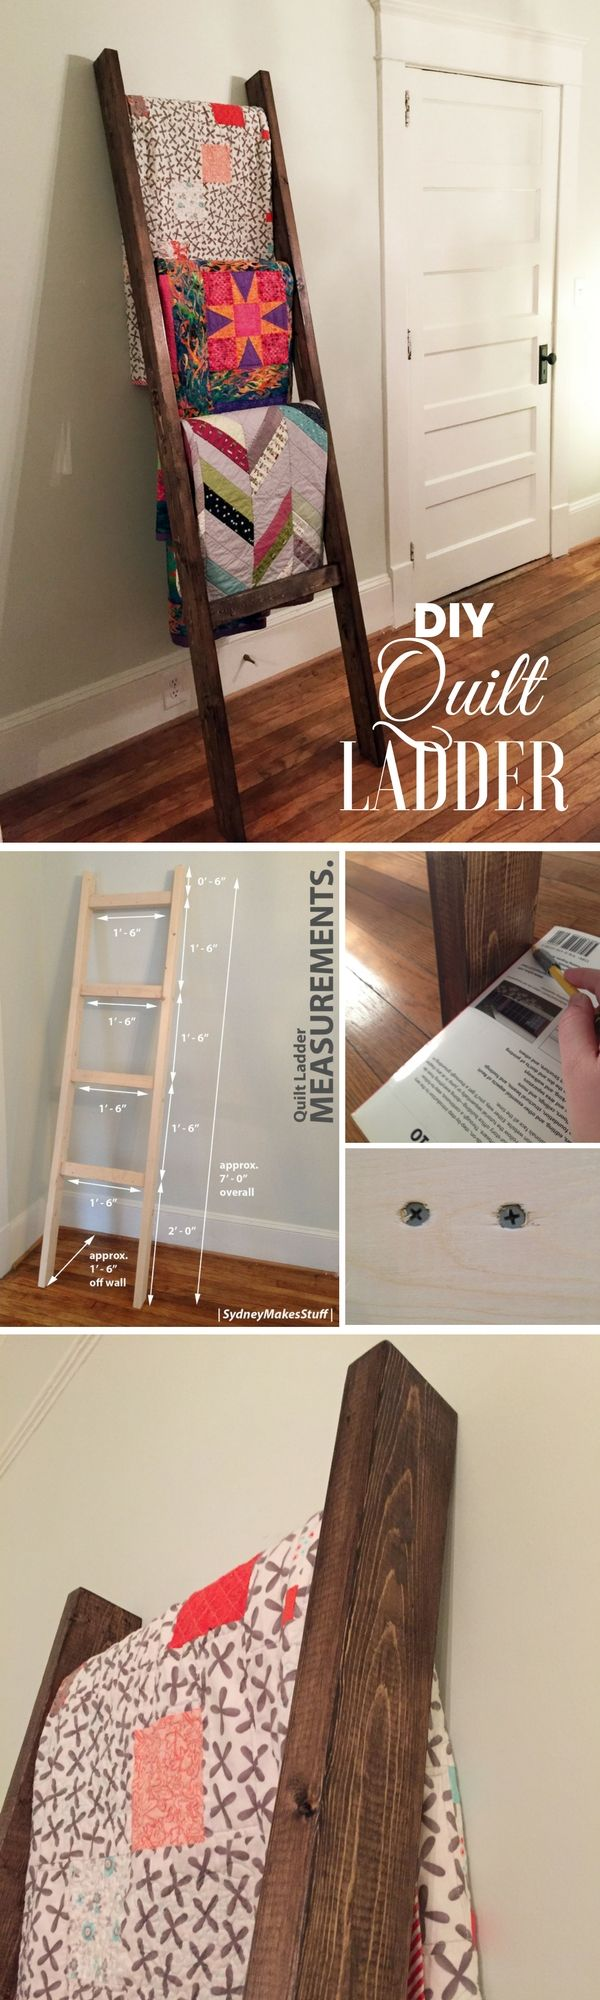 Check out how to build an easy DIY Quilt Ladder @istandarddesign